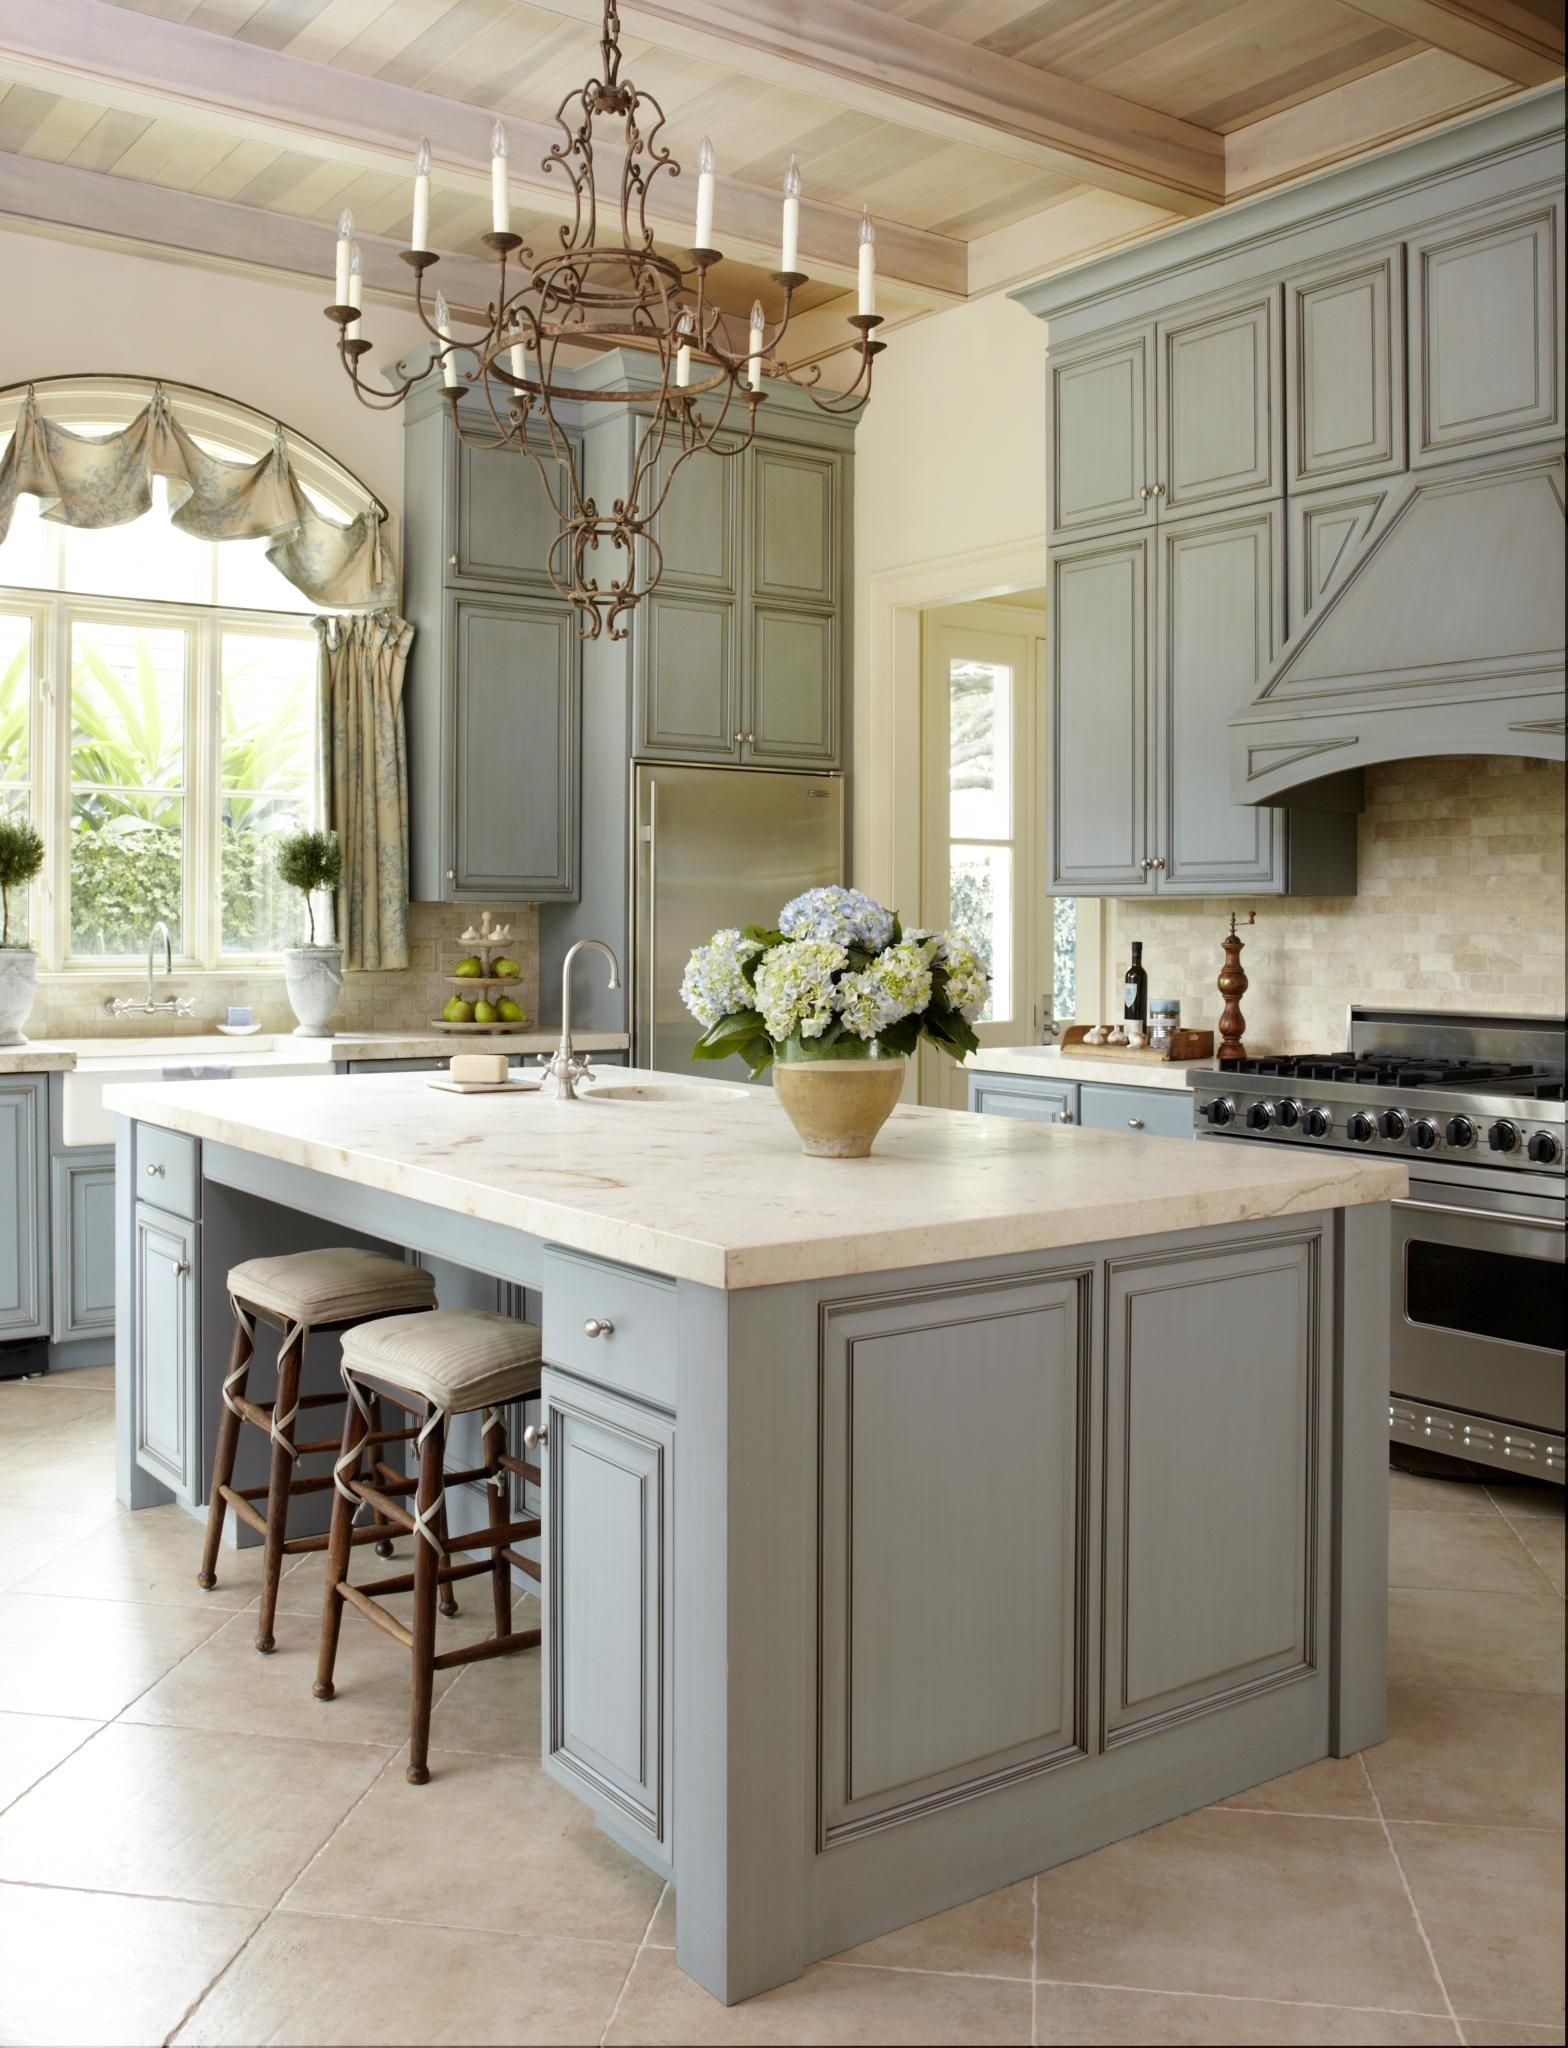 Modern Country Kitchen Blue charming ideas french country decorating ideas | french country